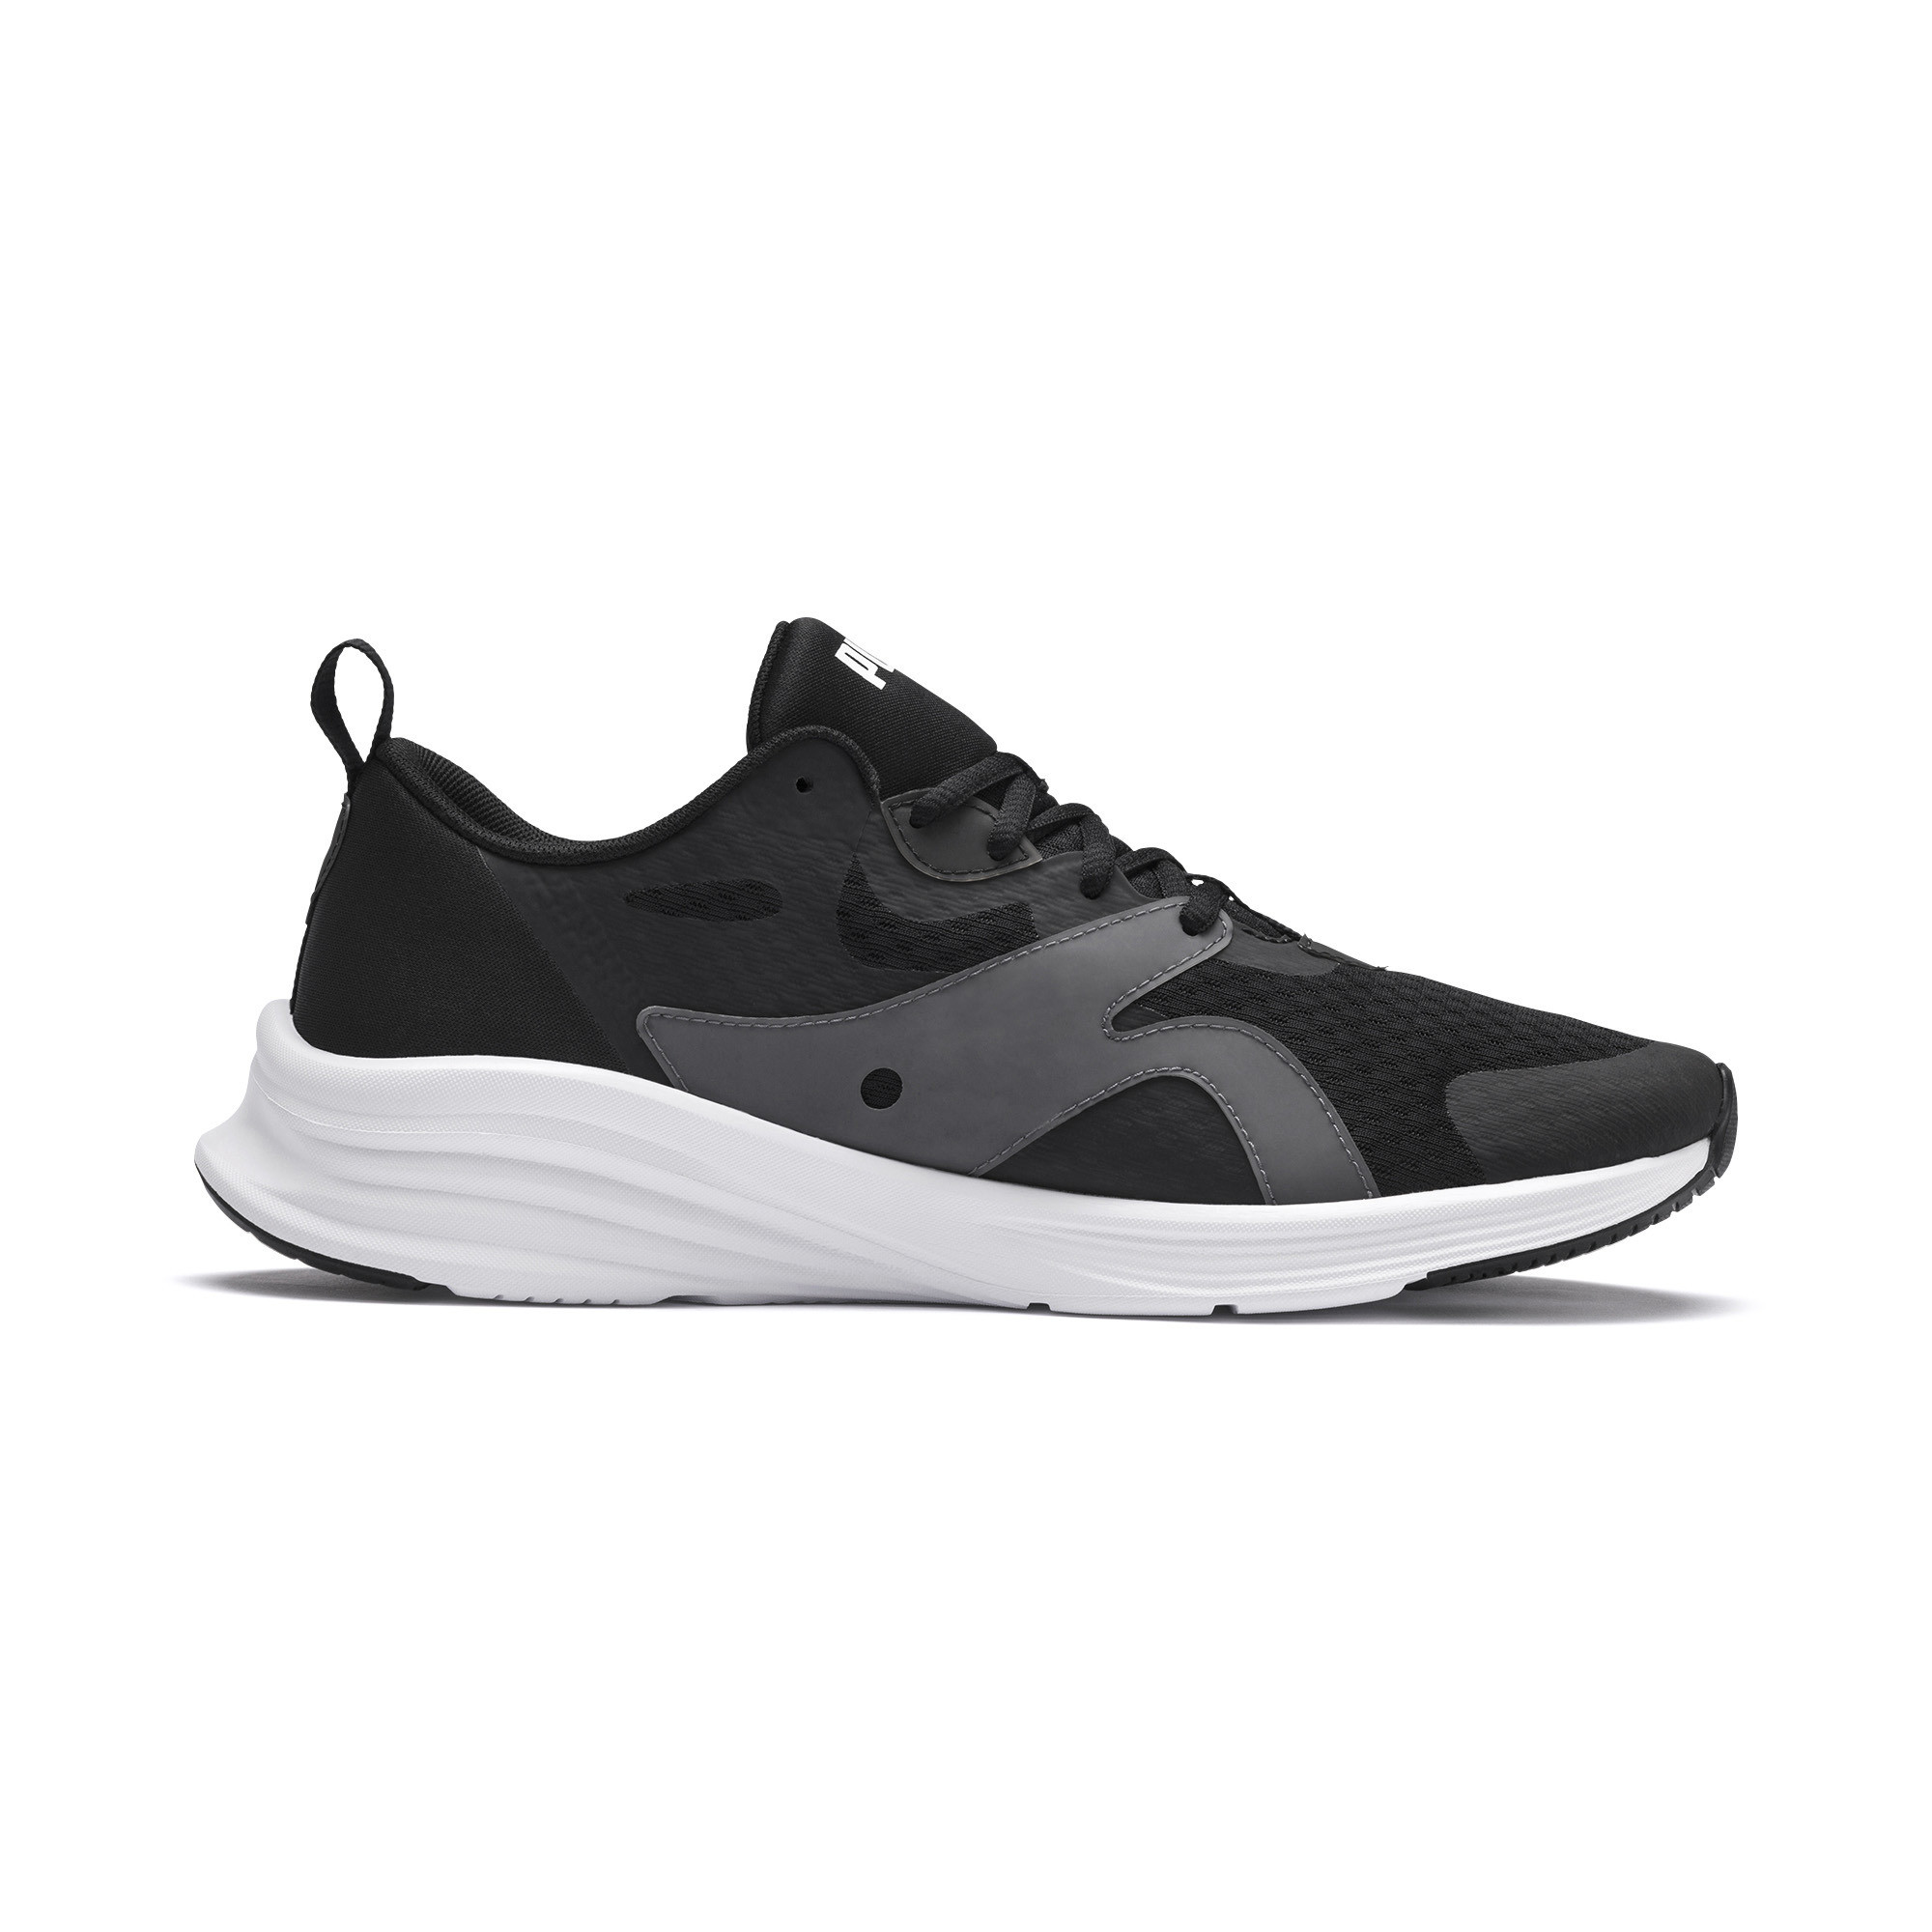 PUMA-Men-039-s-HYBRID-Fuego-Running-Shoes thumbnail 15